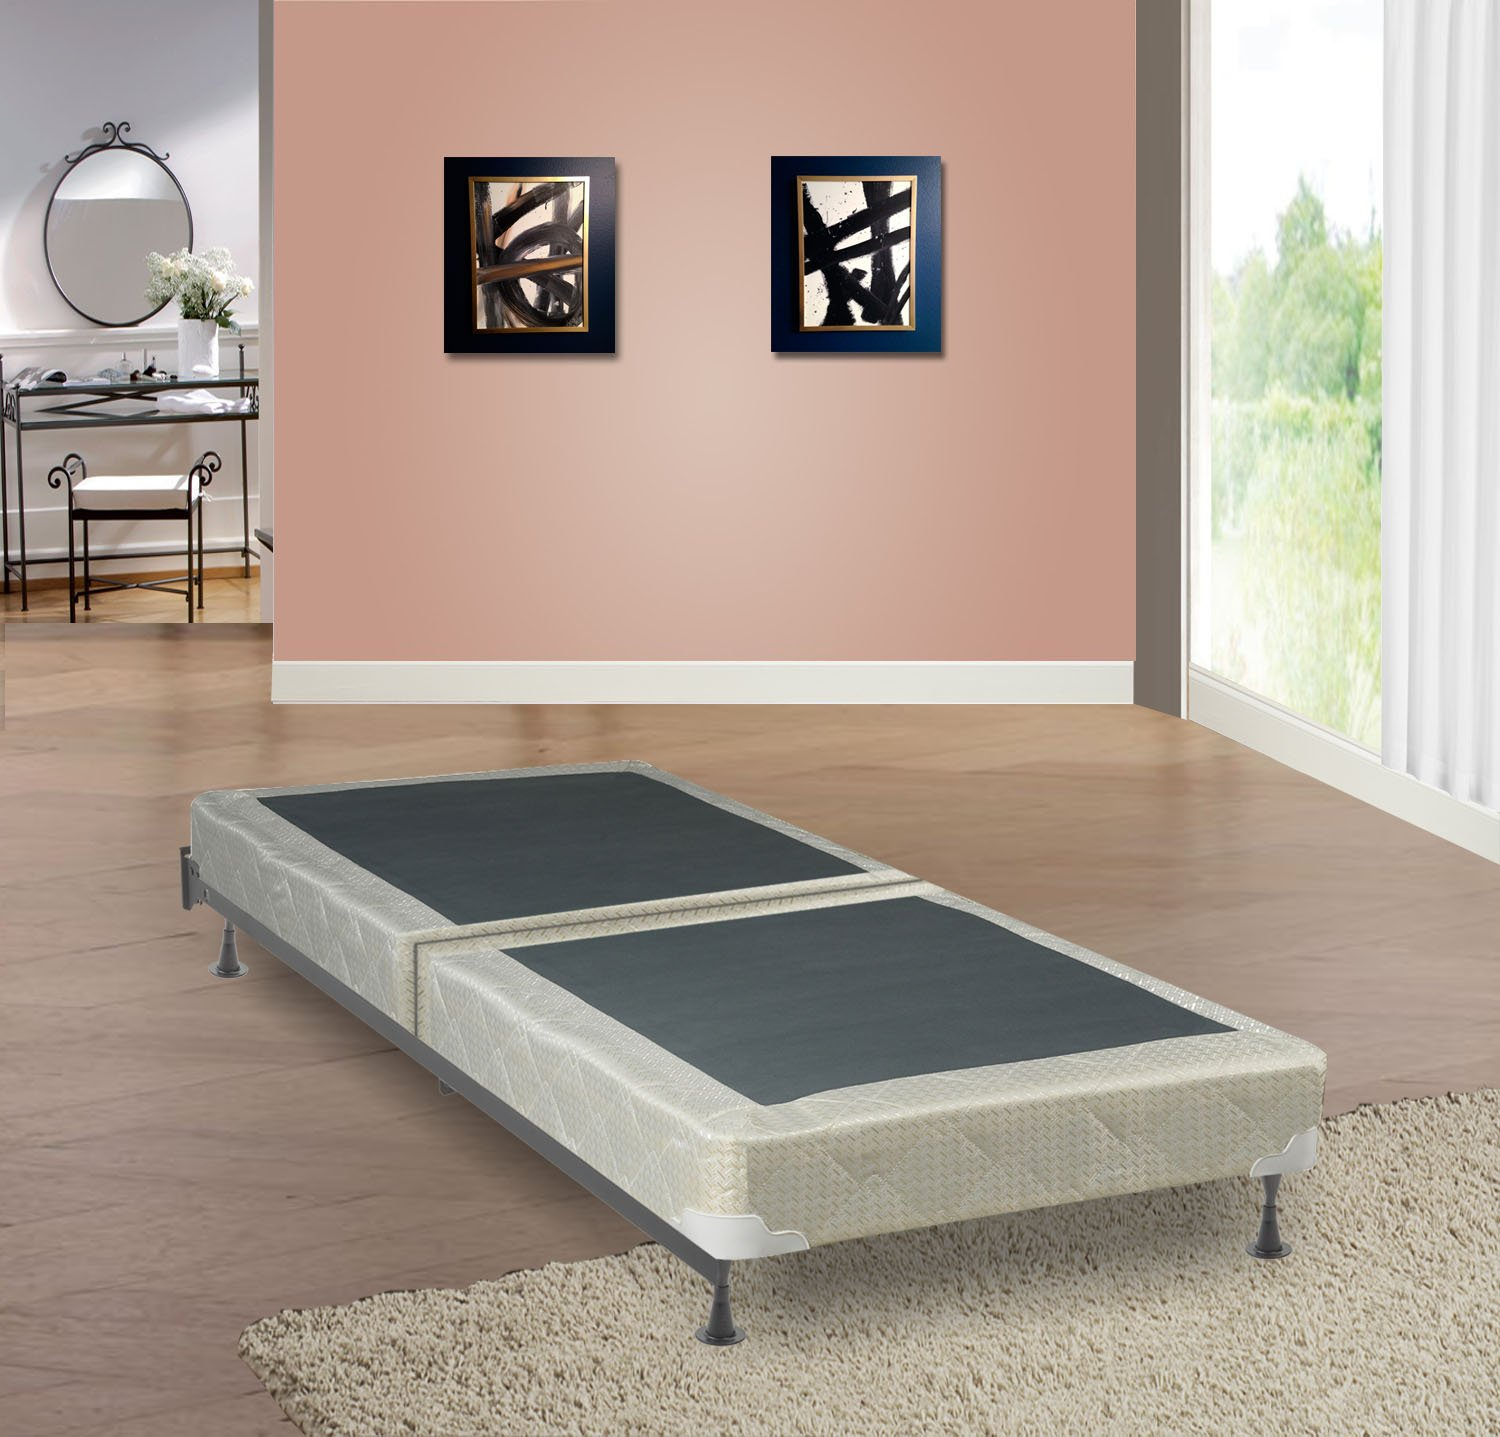 Mattress Solution, Split Box Spring/Foundation for Mattress |Twin Size|